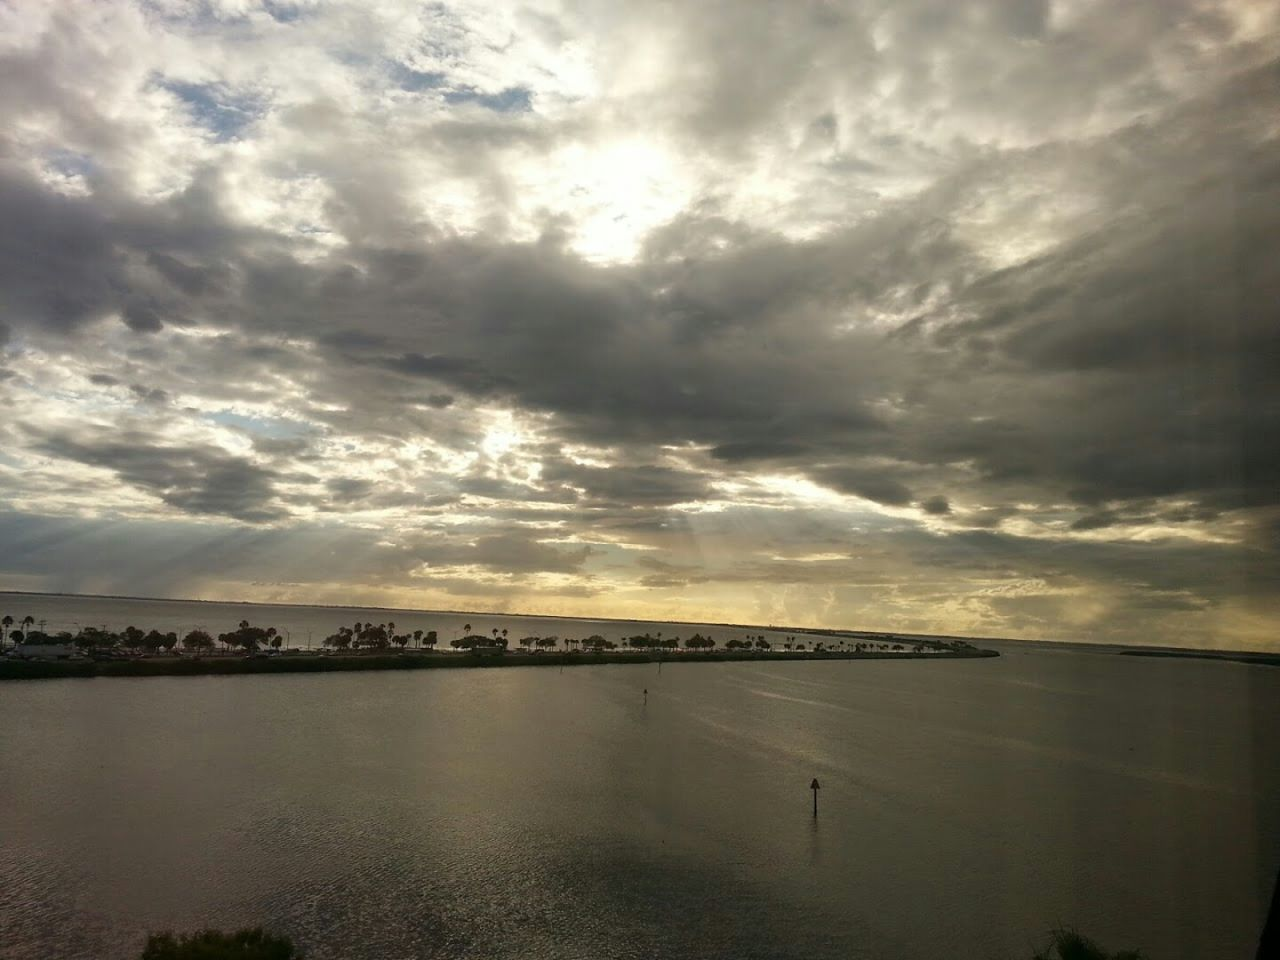 cloud - sky, sky, water, tranquility, beauty in nature, tranquil scene, lake, scenics, no people, nature, reflection, sunset, outdoors, day